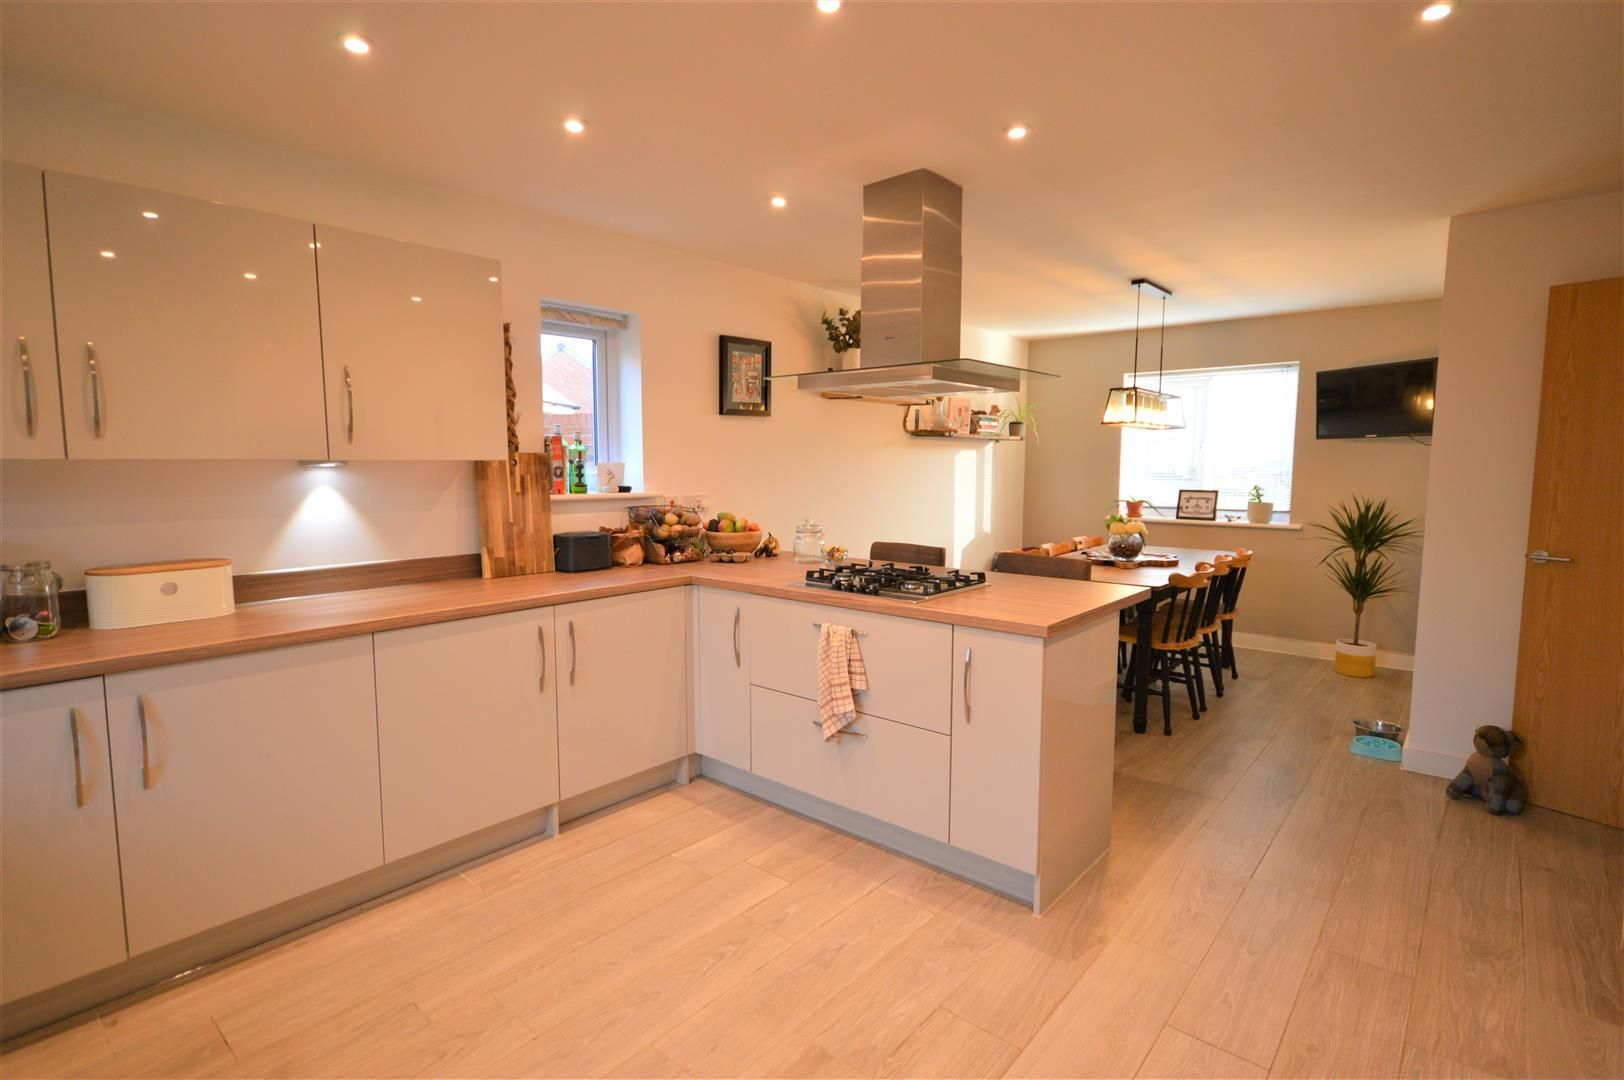 4 bed detached for sale in Weobley 2